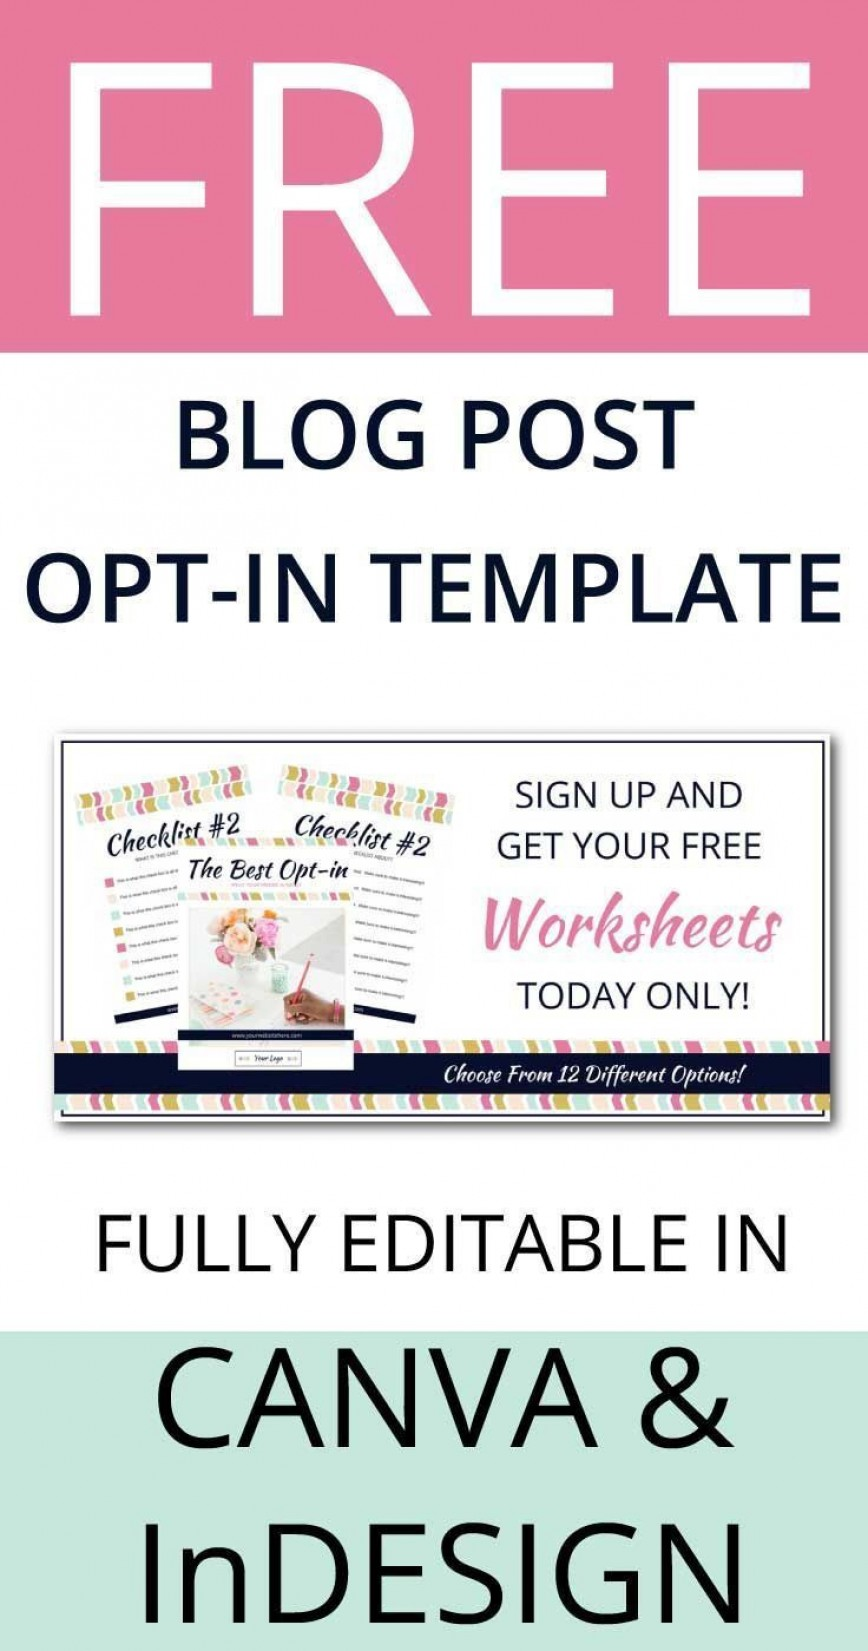 005 Sensational Join Our Mailing List Template High Resolution  Email868